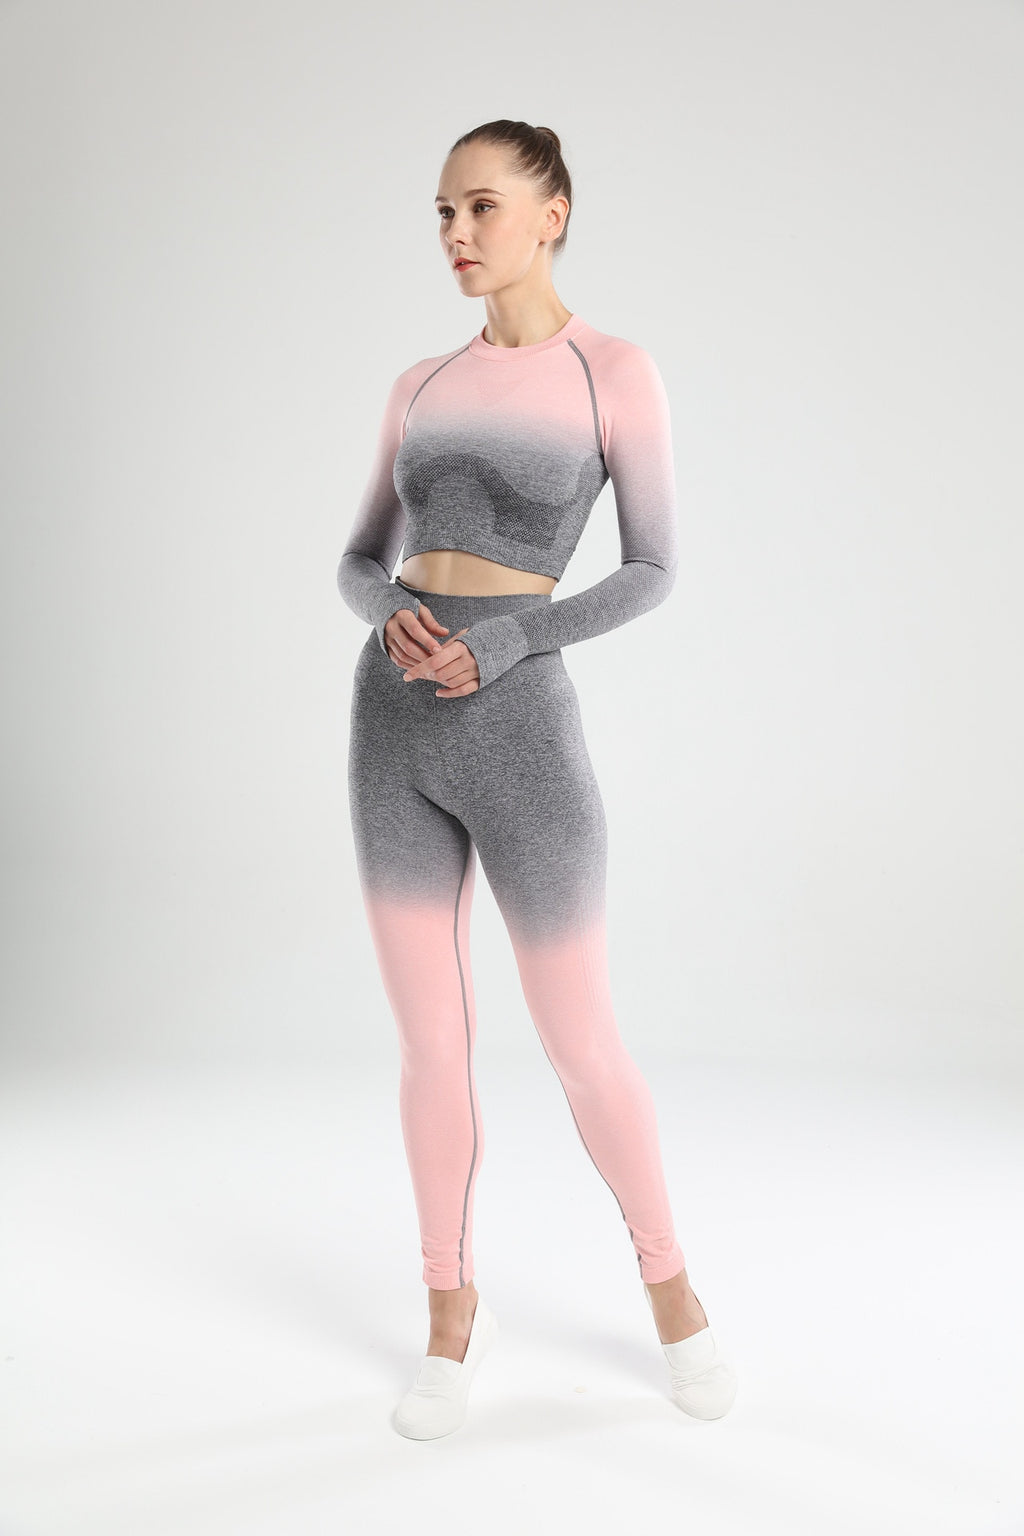 Astoria Seamless Ombre Sleeved Crop - Grey/Pink